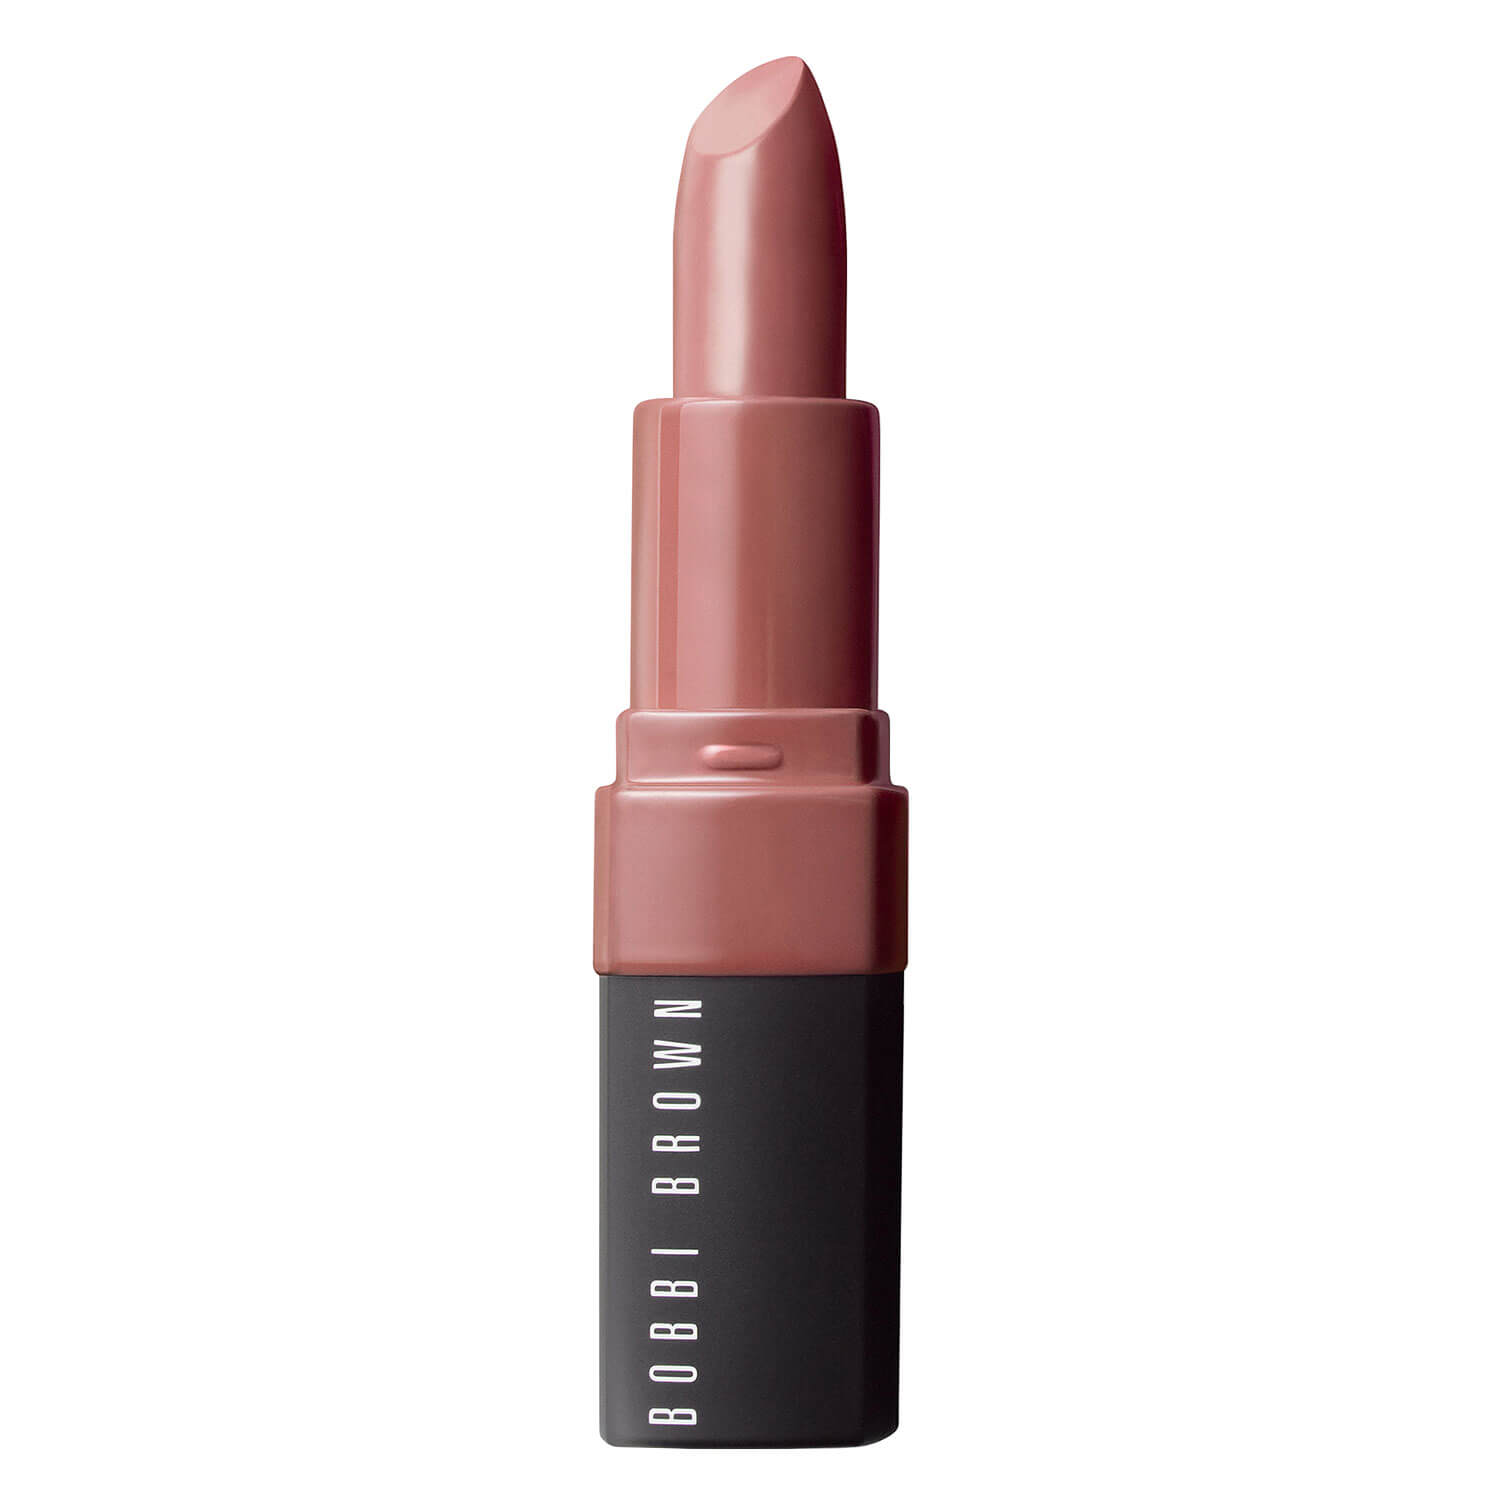 BB Lip Color - Crushed Lip Color Bare